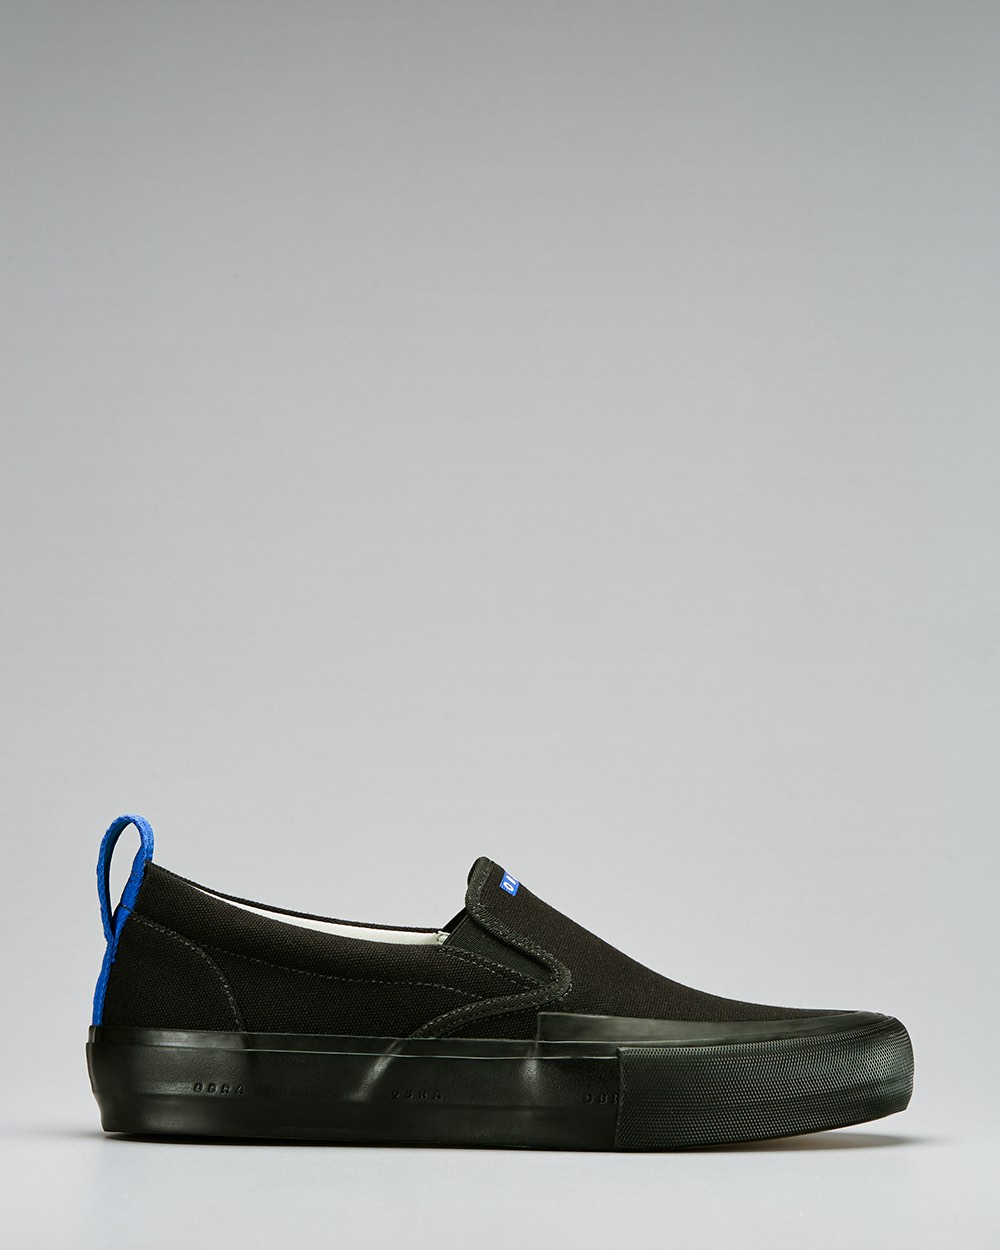 TERRA CANVAS SLIP-ON WRAP TOE<br />Black/Black/OBRA Blue